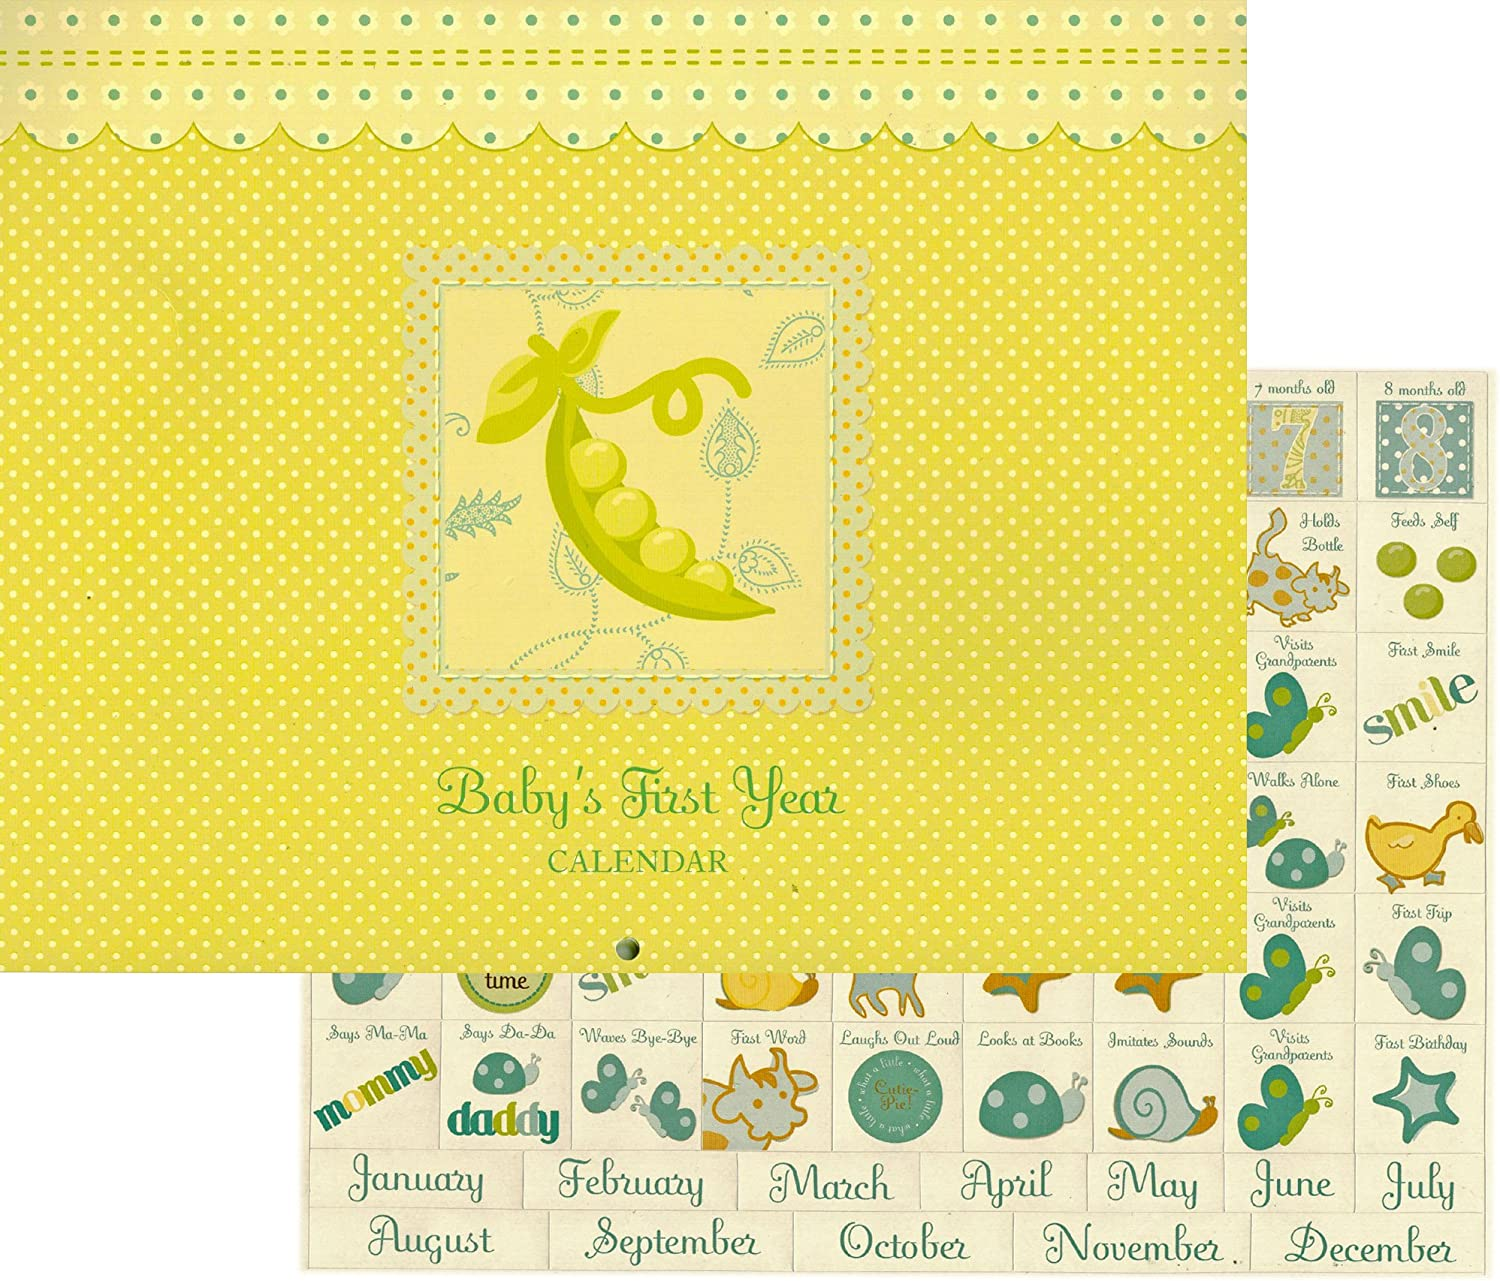 Sweet Pea Baby's 1st Year Calendar Keepsake by C.R. Gibson